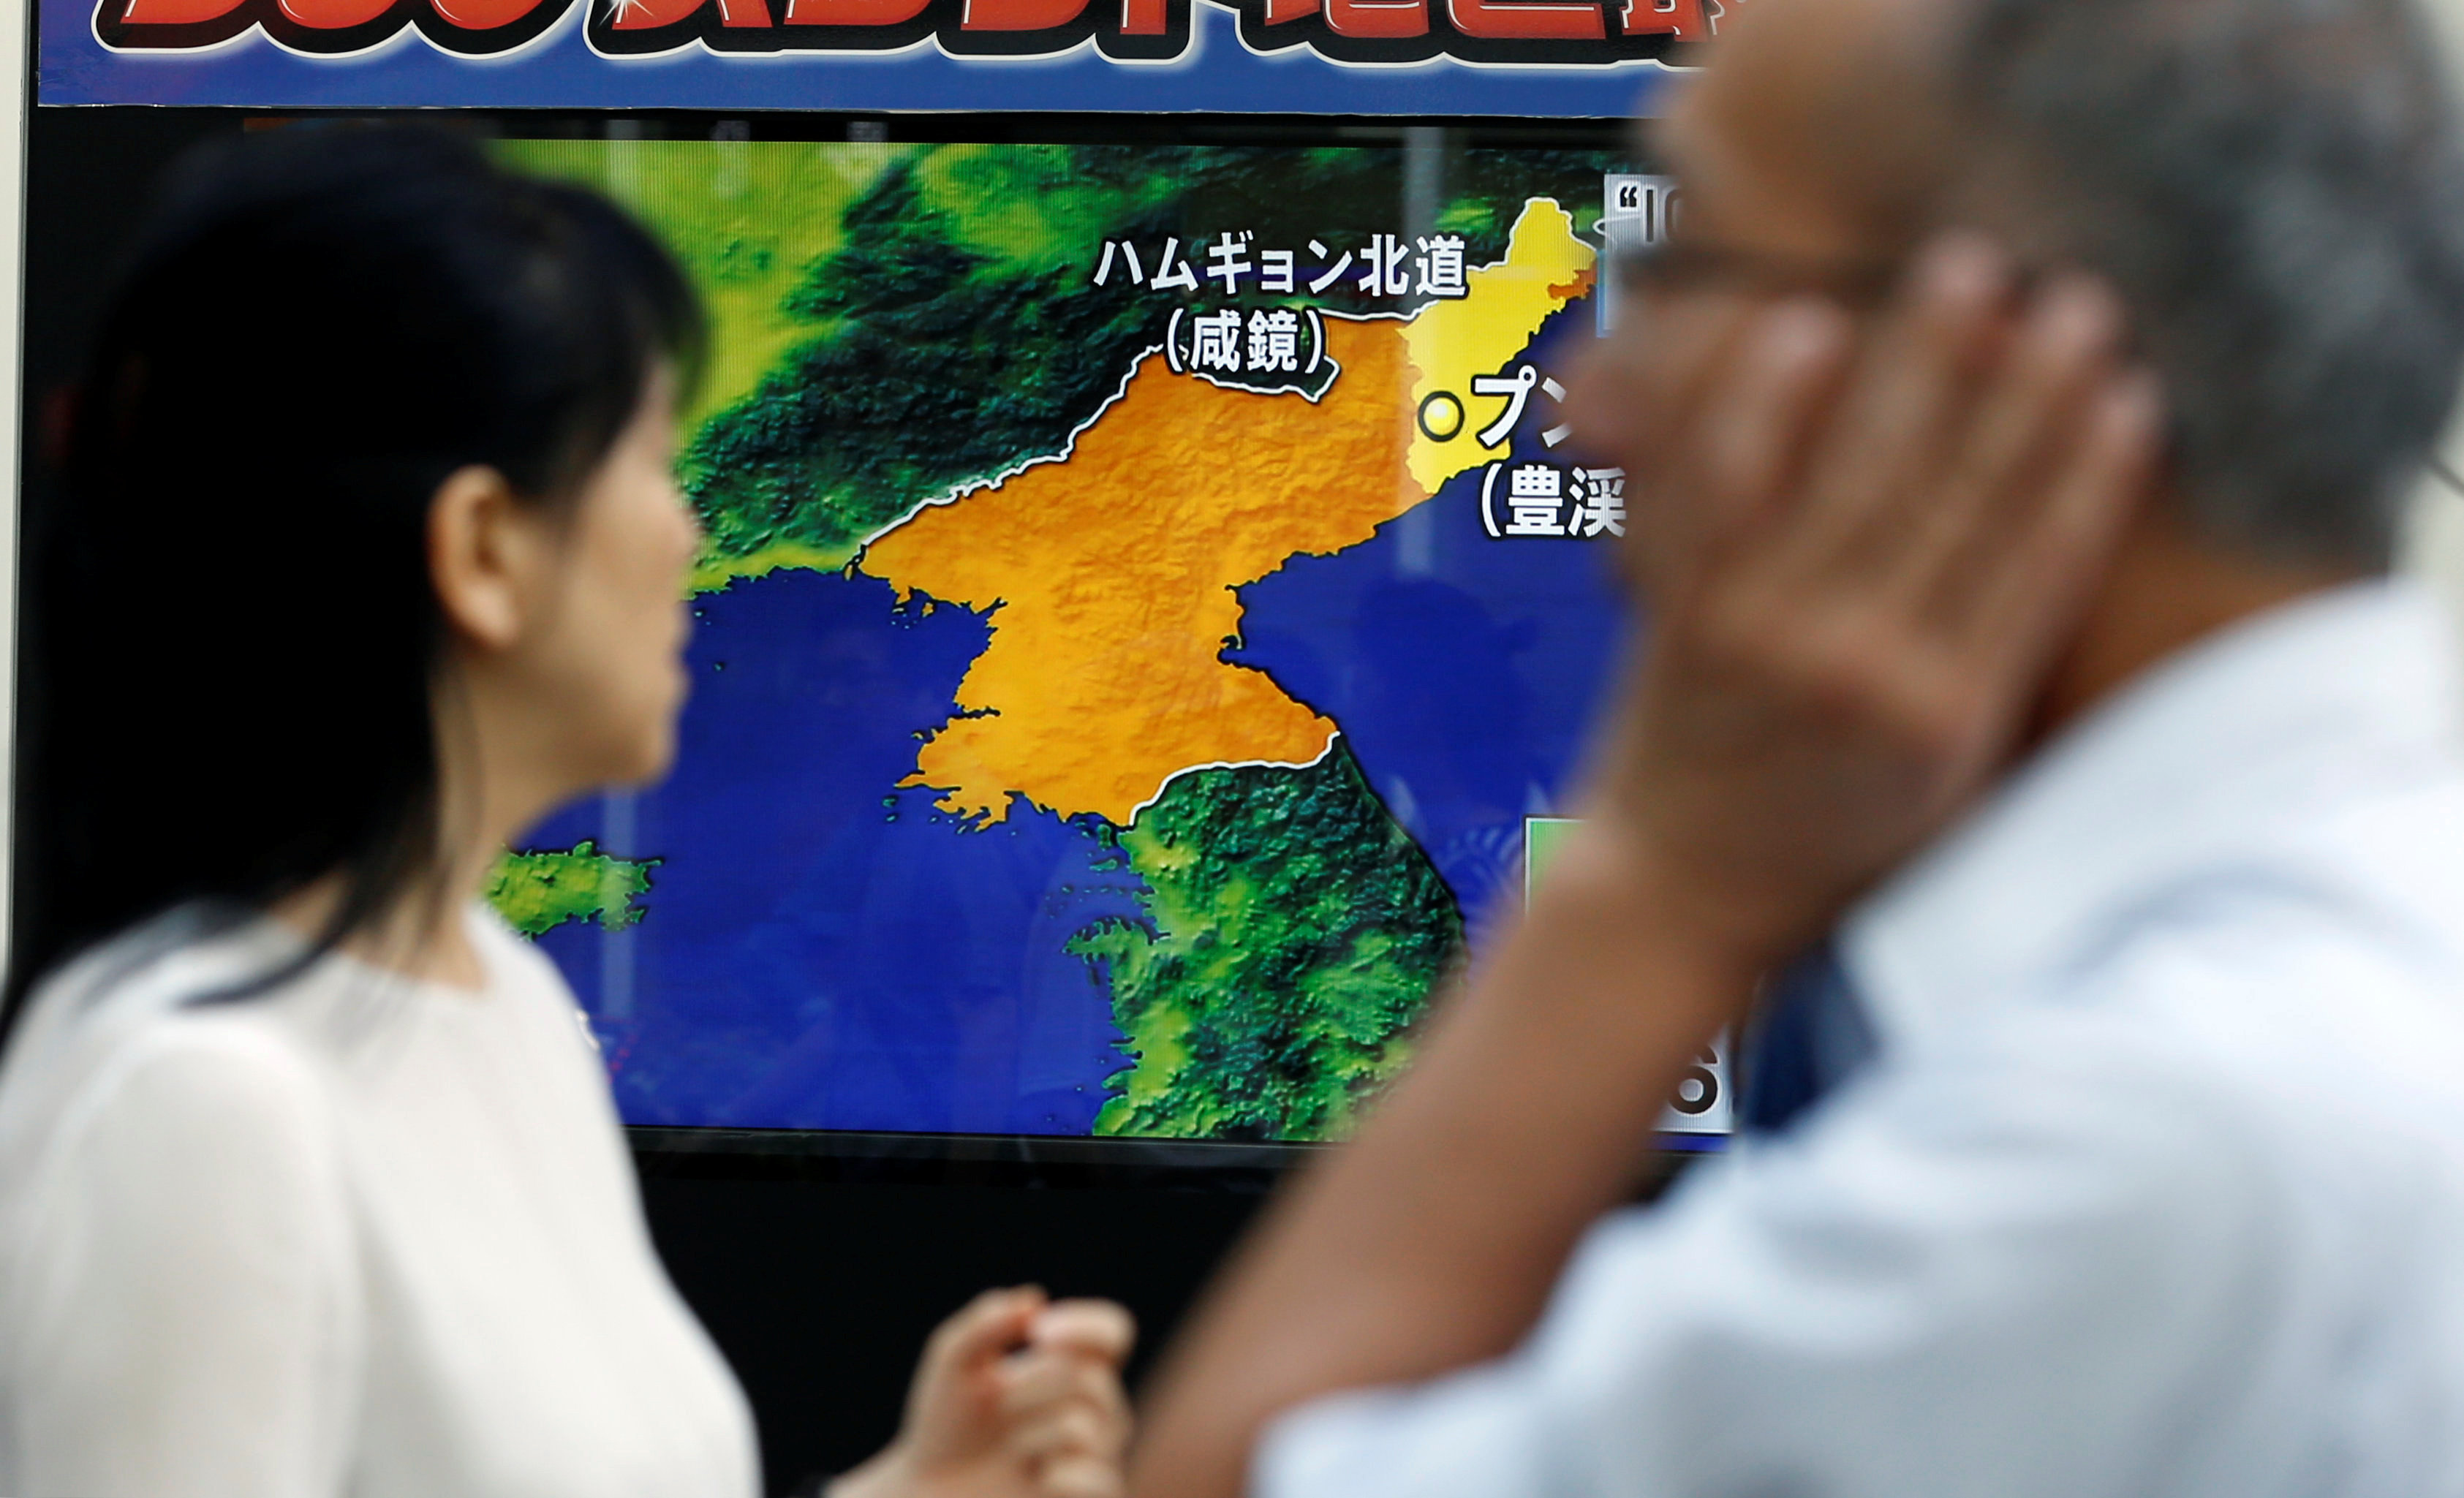 People walk past a street monitor showing a news report about North Korea's nuclear test, in Tokyo, Japan on Sept. 3, 2017. (REUTERS/Toru Hanai)